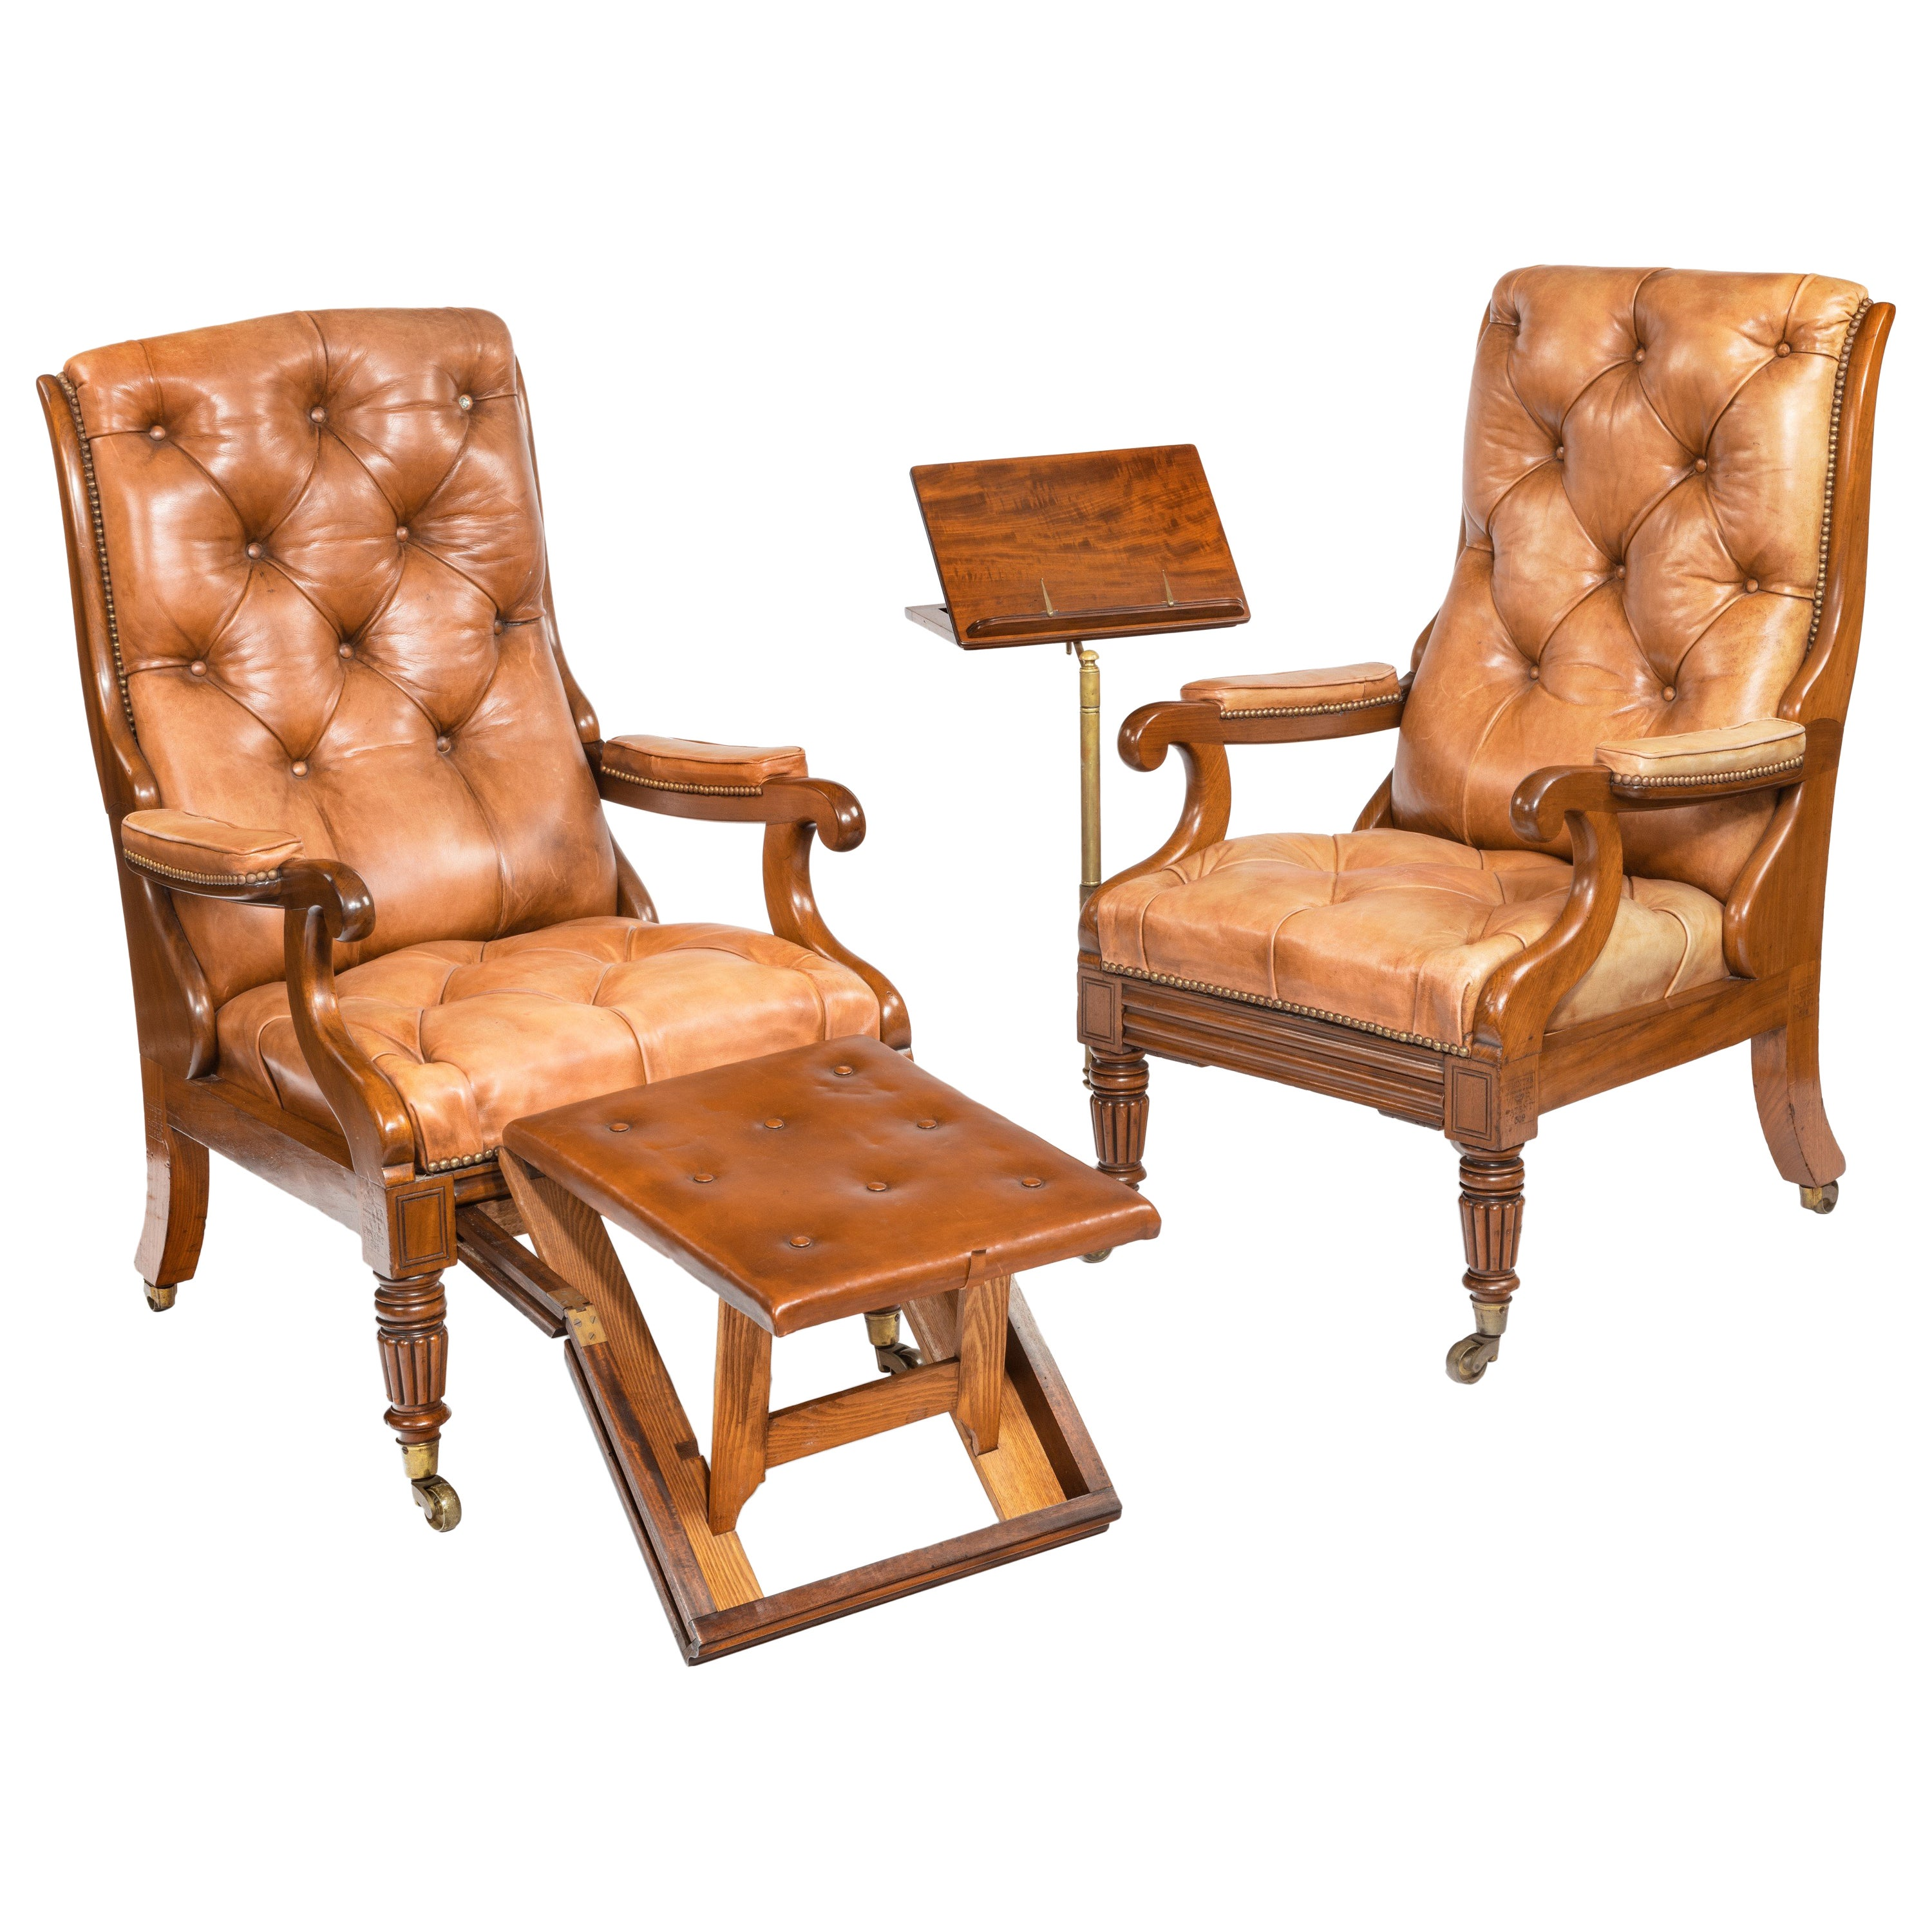 Pair of William iv Adjustable Mahogany Library Armchairs, by George Minter